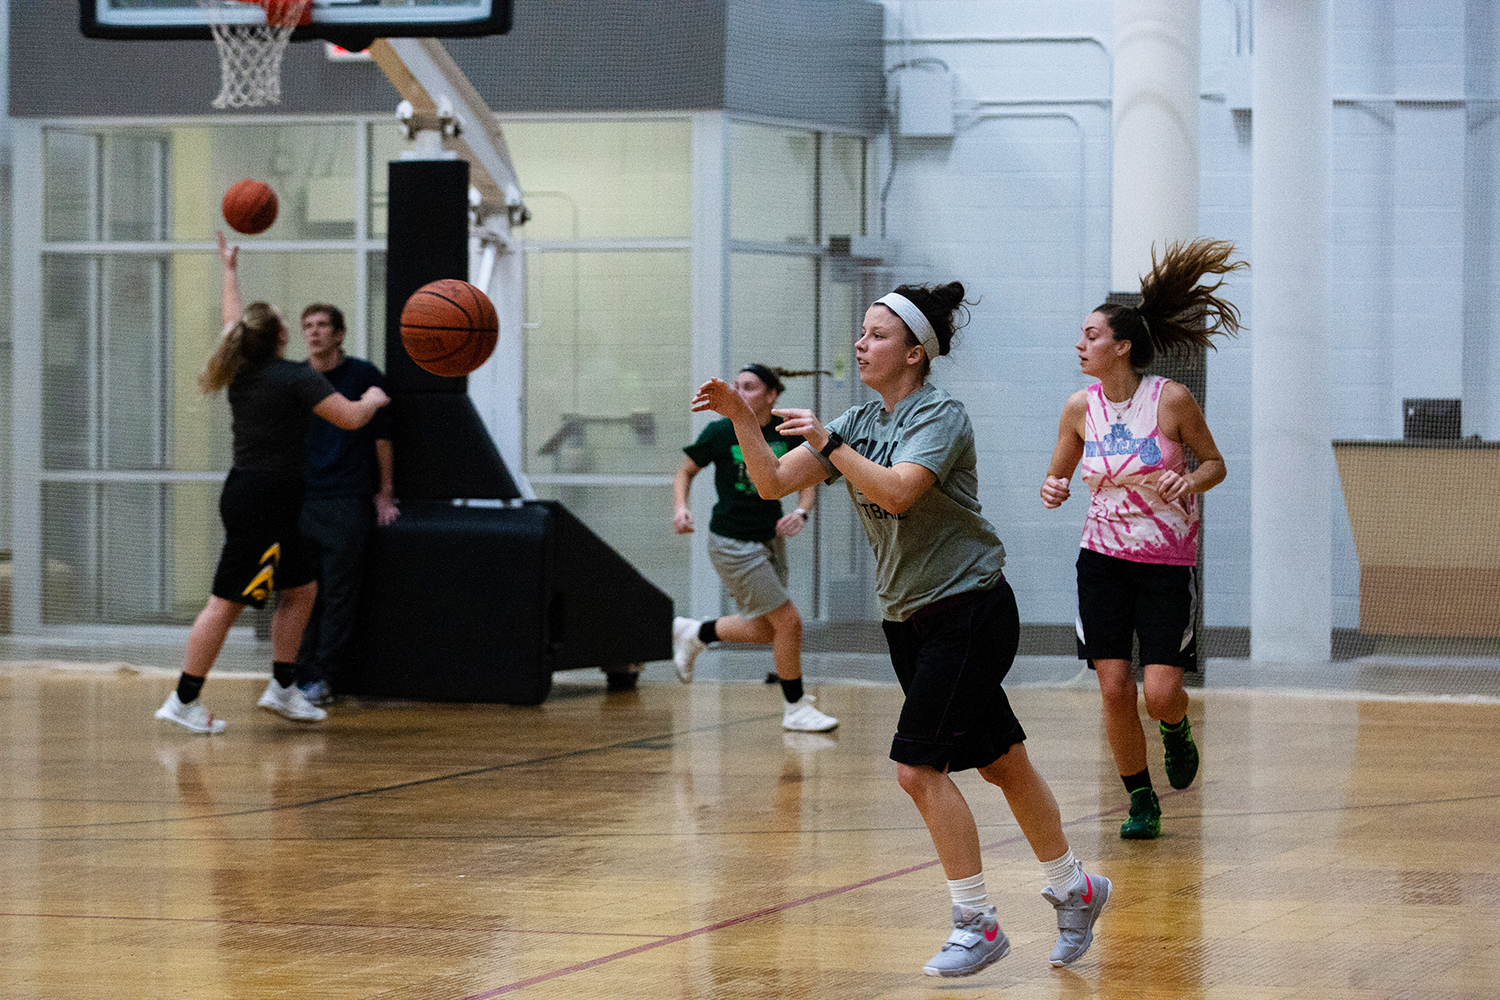 Members of the Iowa Women's Club Basketball team practice at the field house on Oct. 29, 2018. The club, in its first year is preparing for a tournament in December.